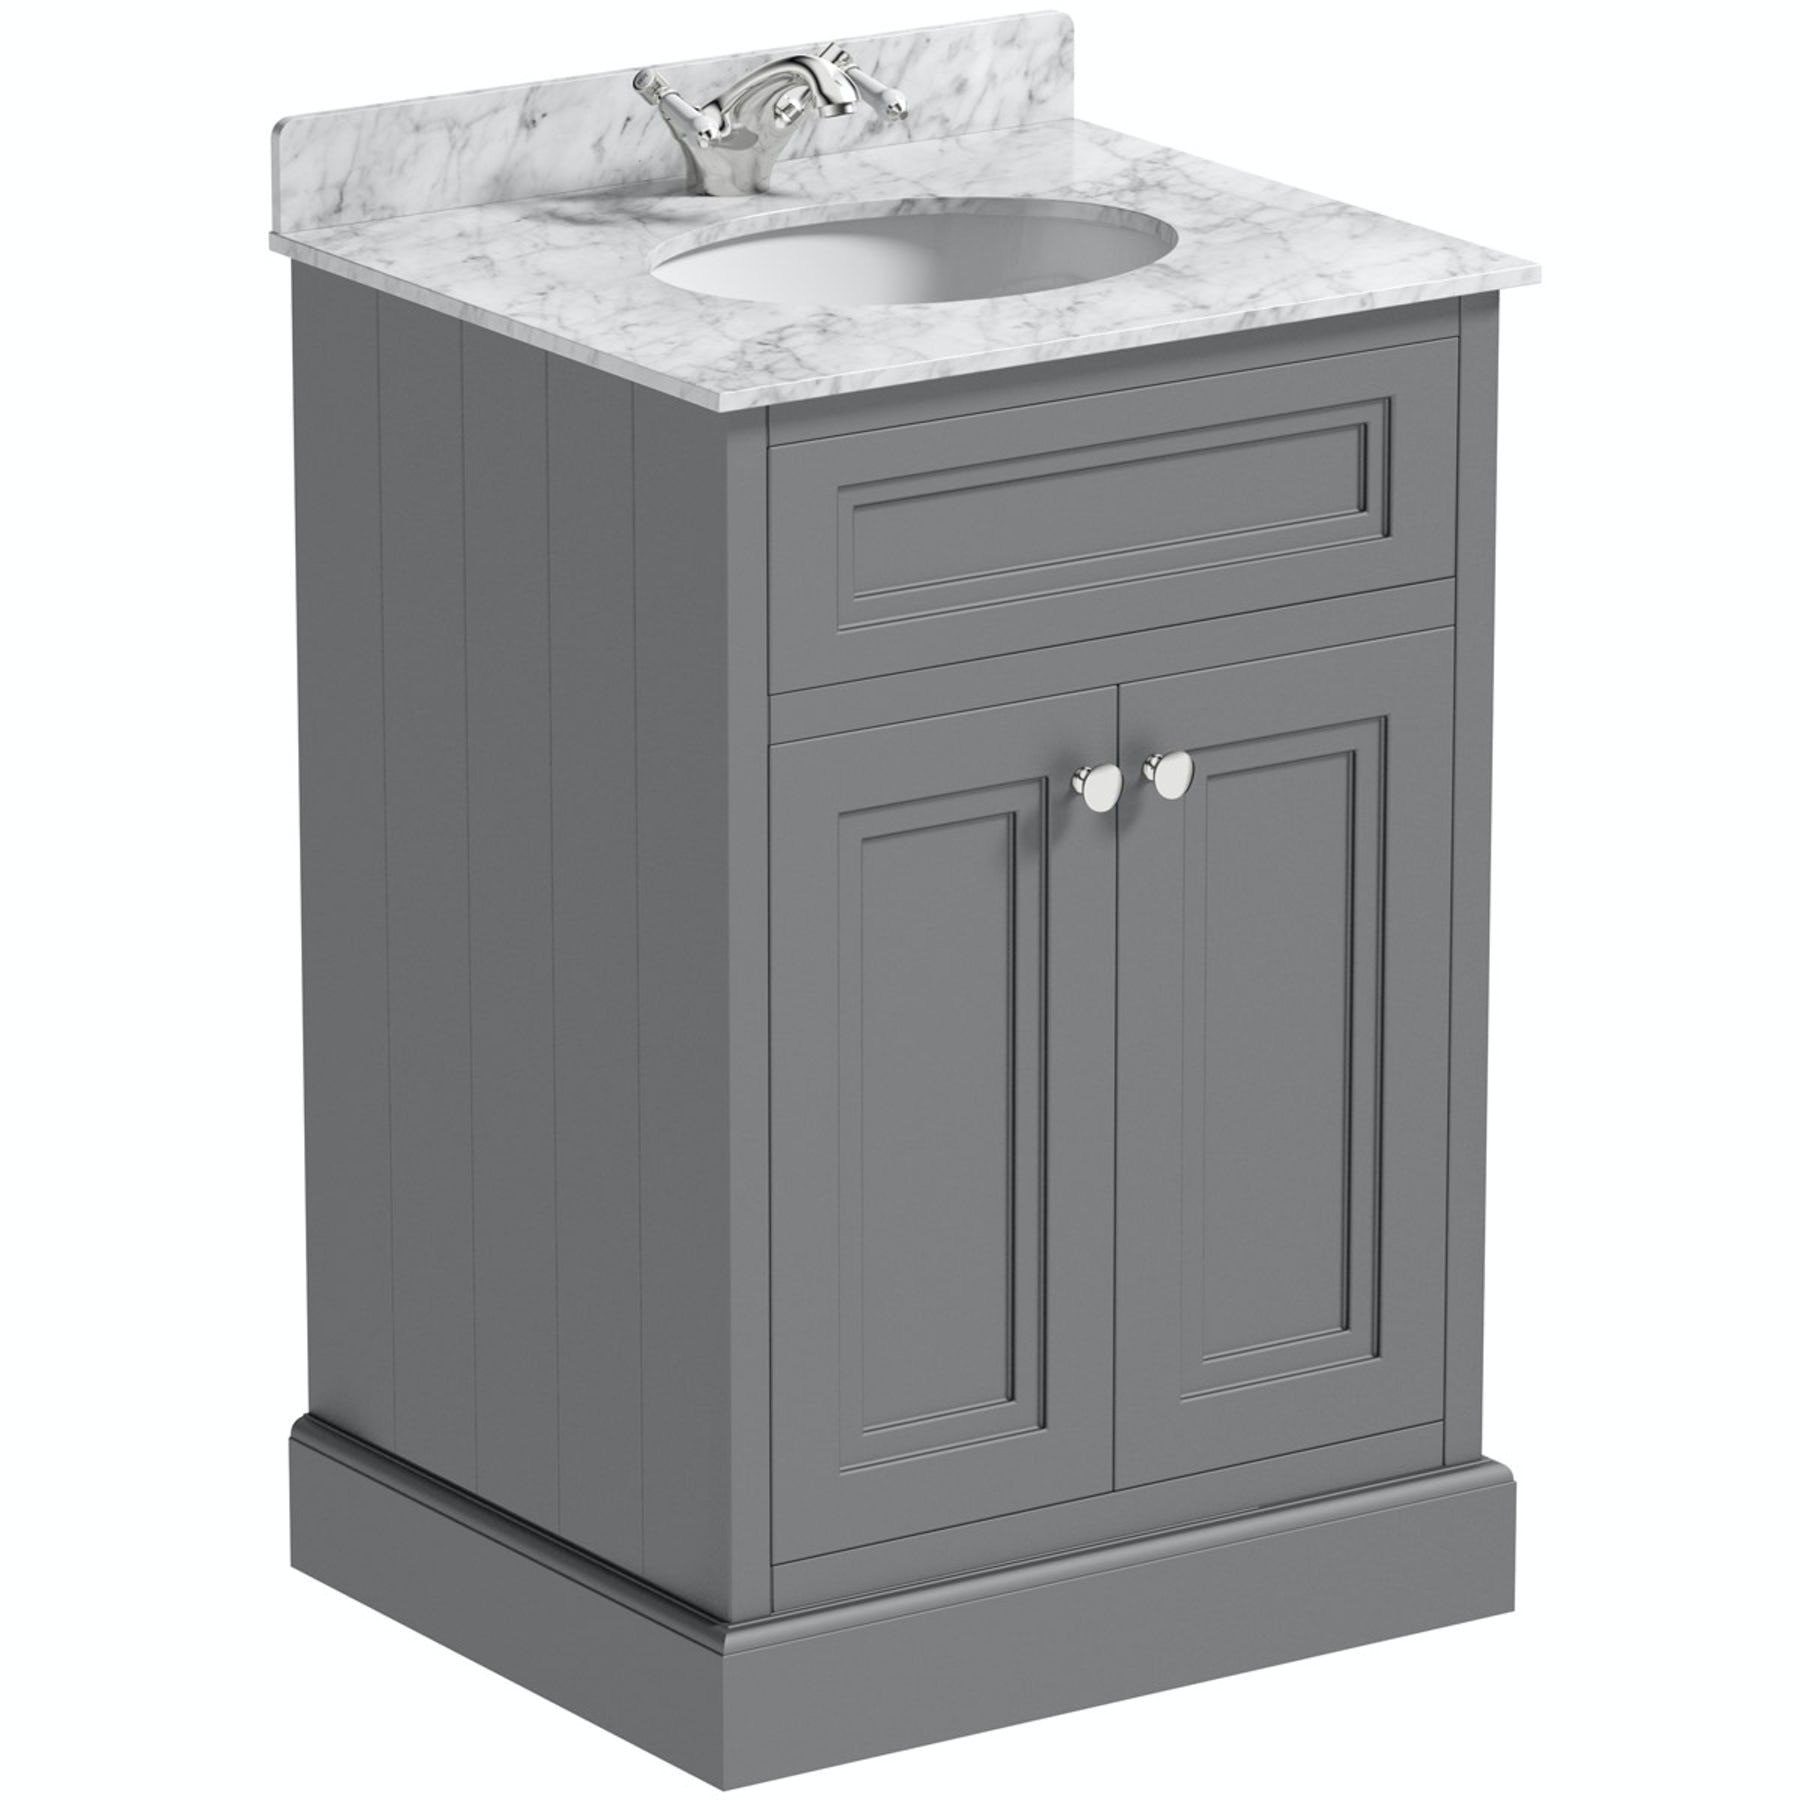 Floorstanding Bathroom Vanity Units | VictoriaPlum.com